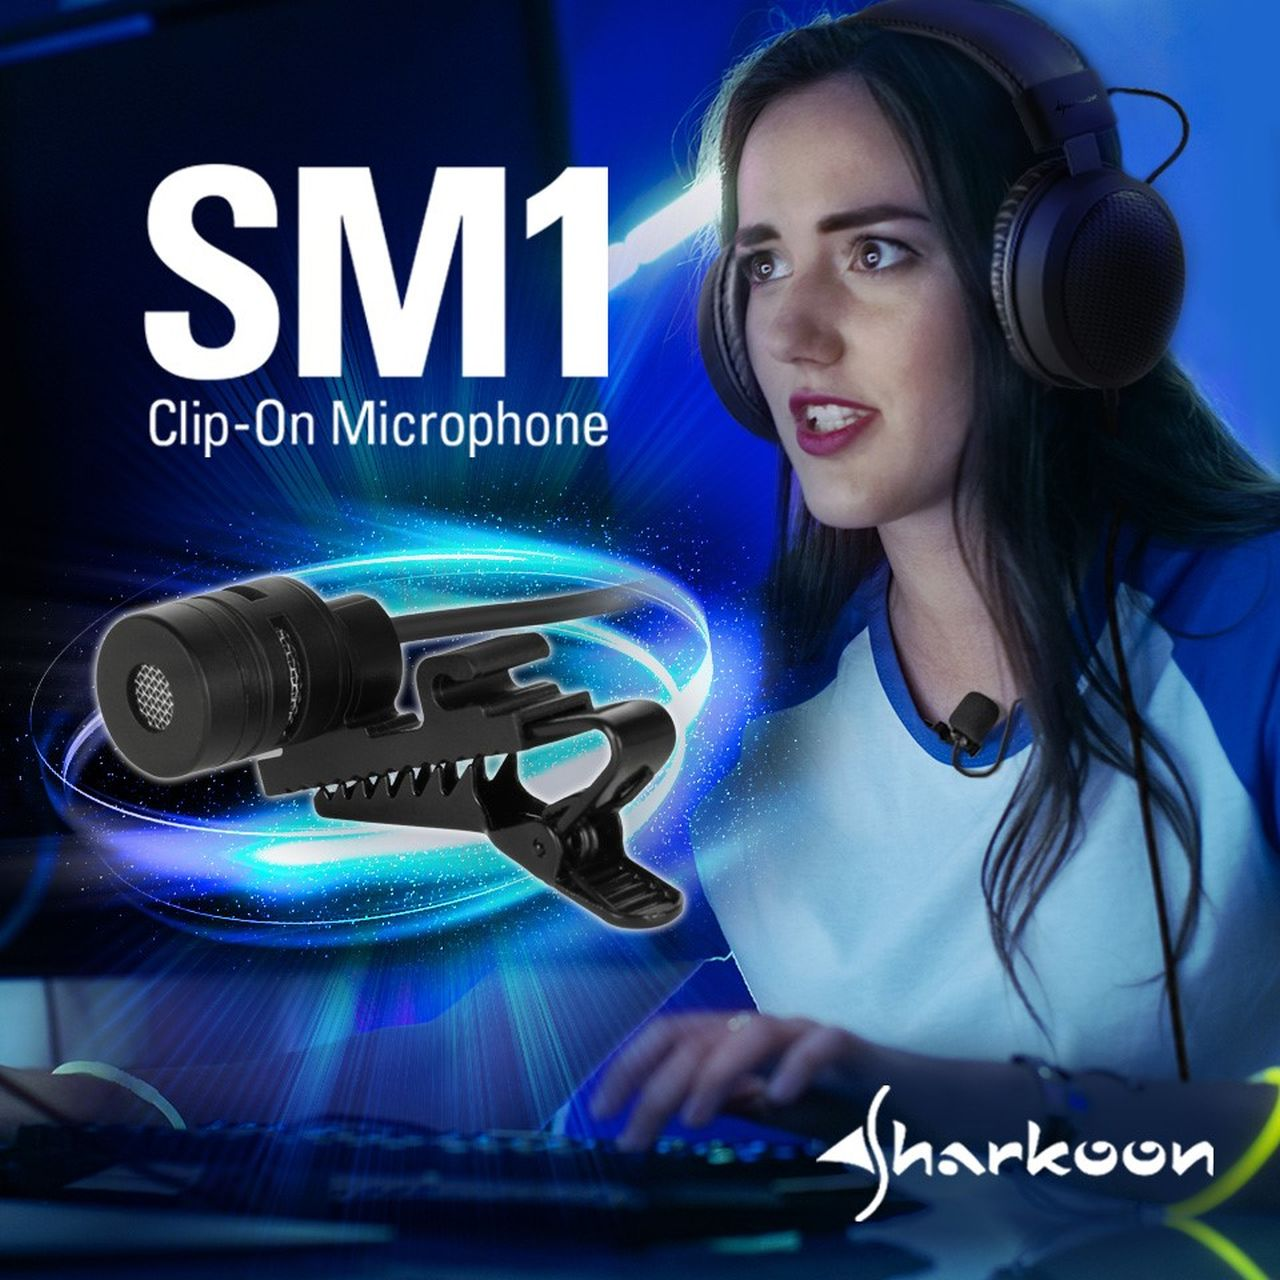 Sharkoon annuncia il microfono clip on per cuffie SM1